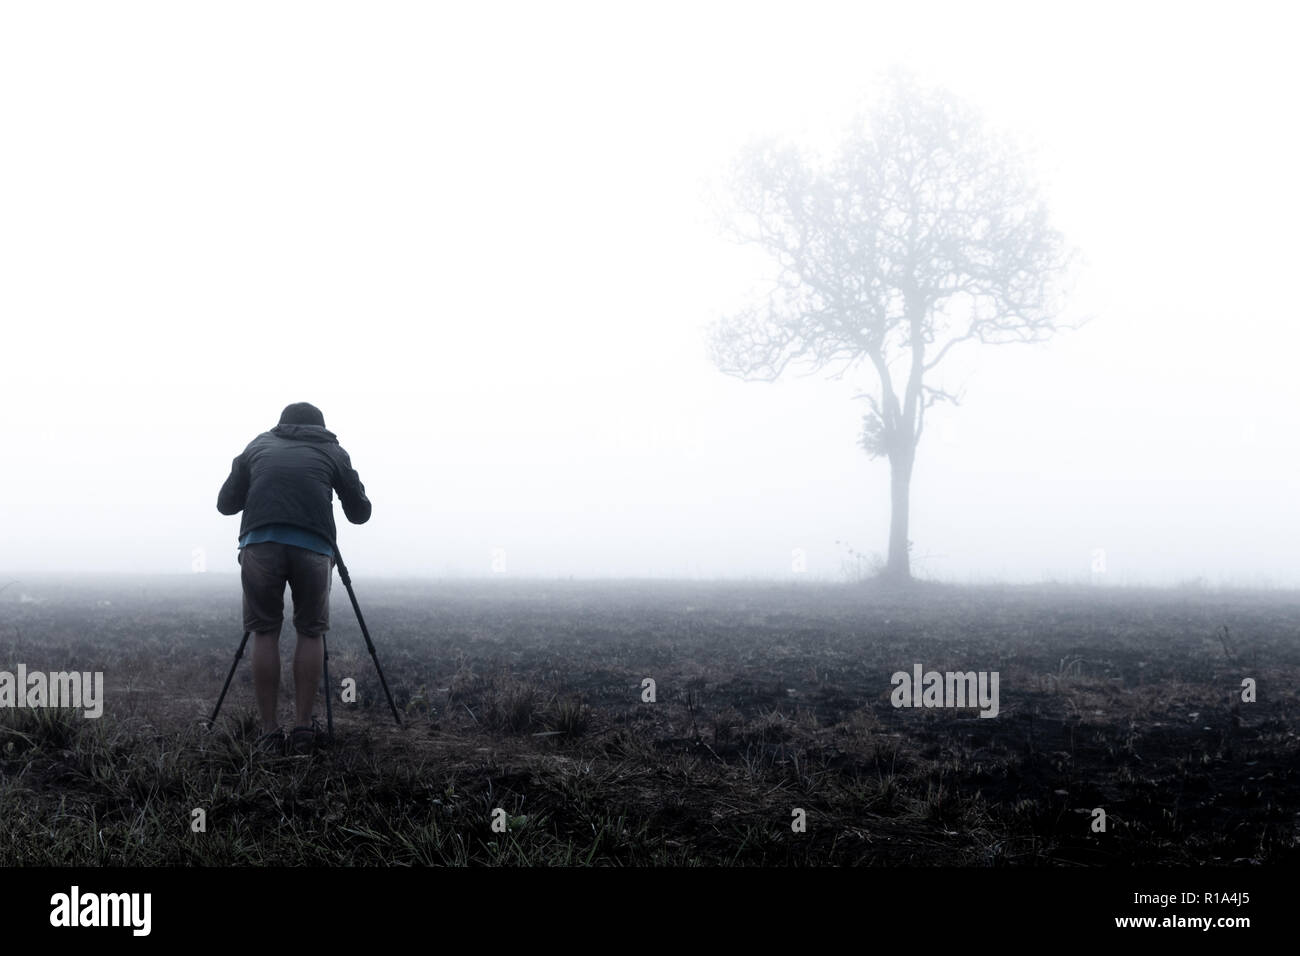 photographer taking photo of lone tree in thick morning fog. photographing tree in Thailand national park. low visibility due to water mist. Stock Photo